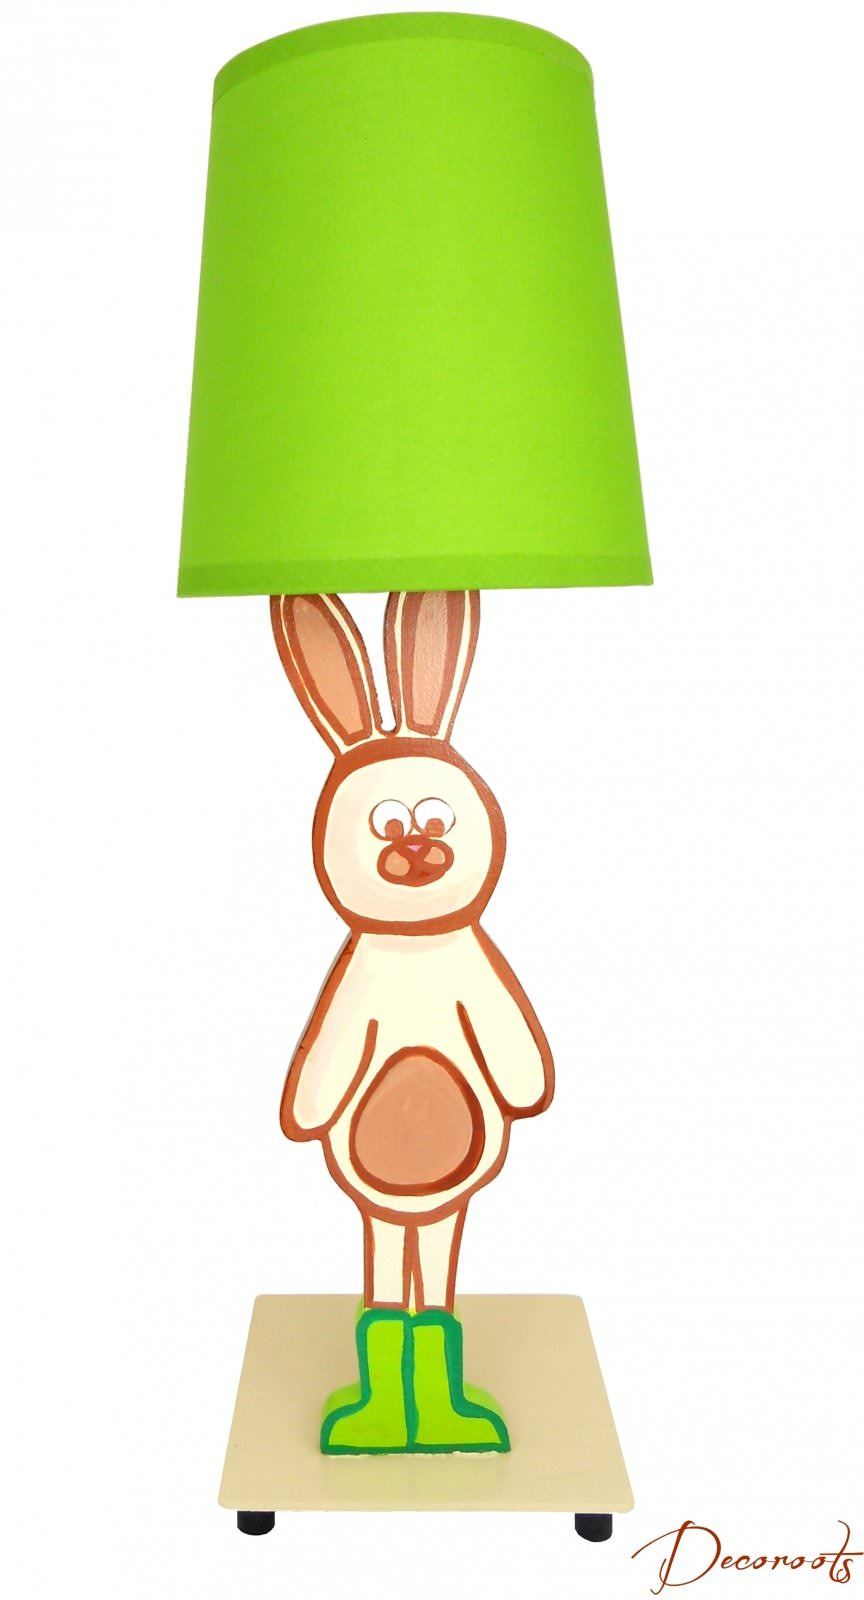 lampe de chevet enfant b b lapin nature for t beige vert. Black Bedroom Furniture Sets. Home Design Ideas